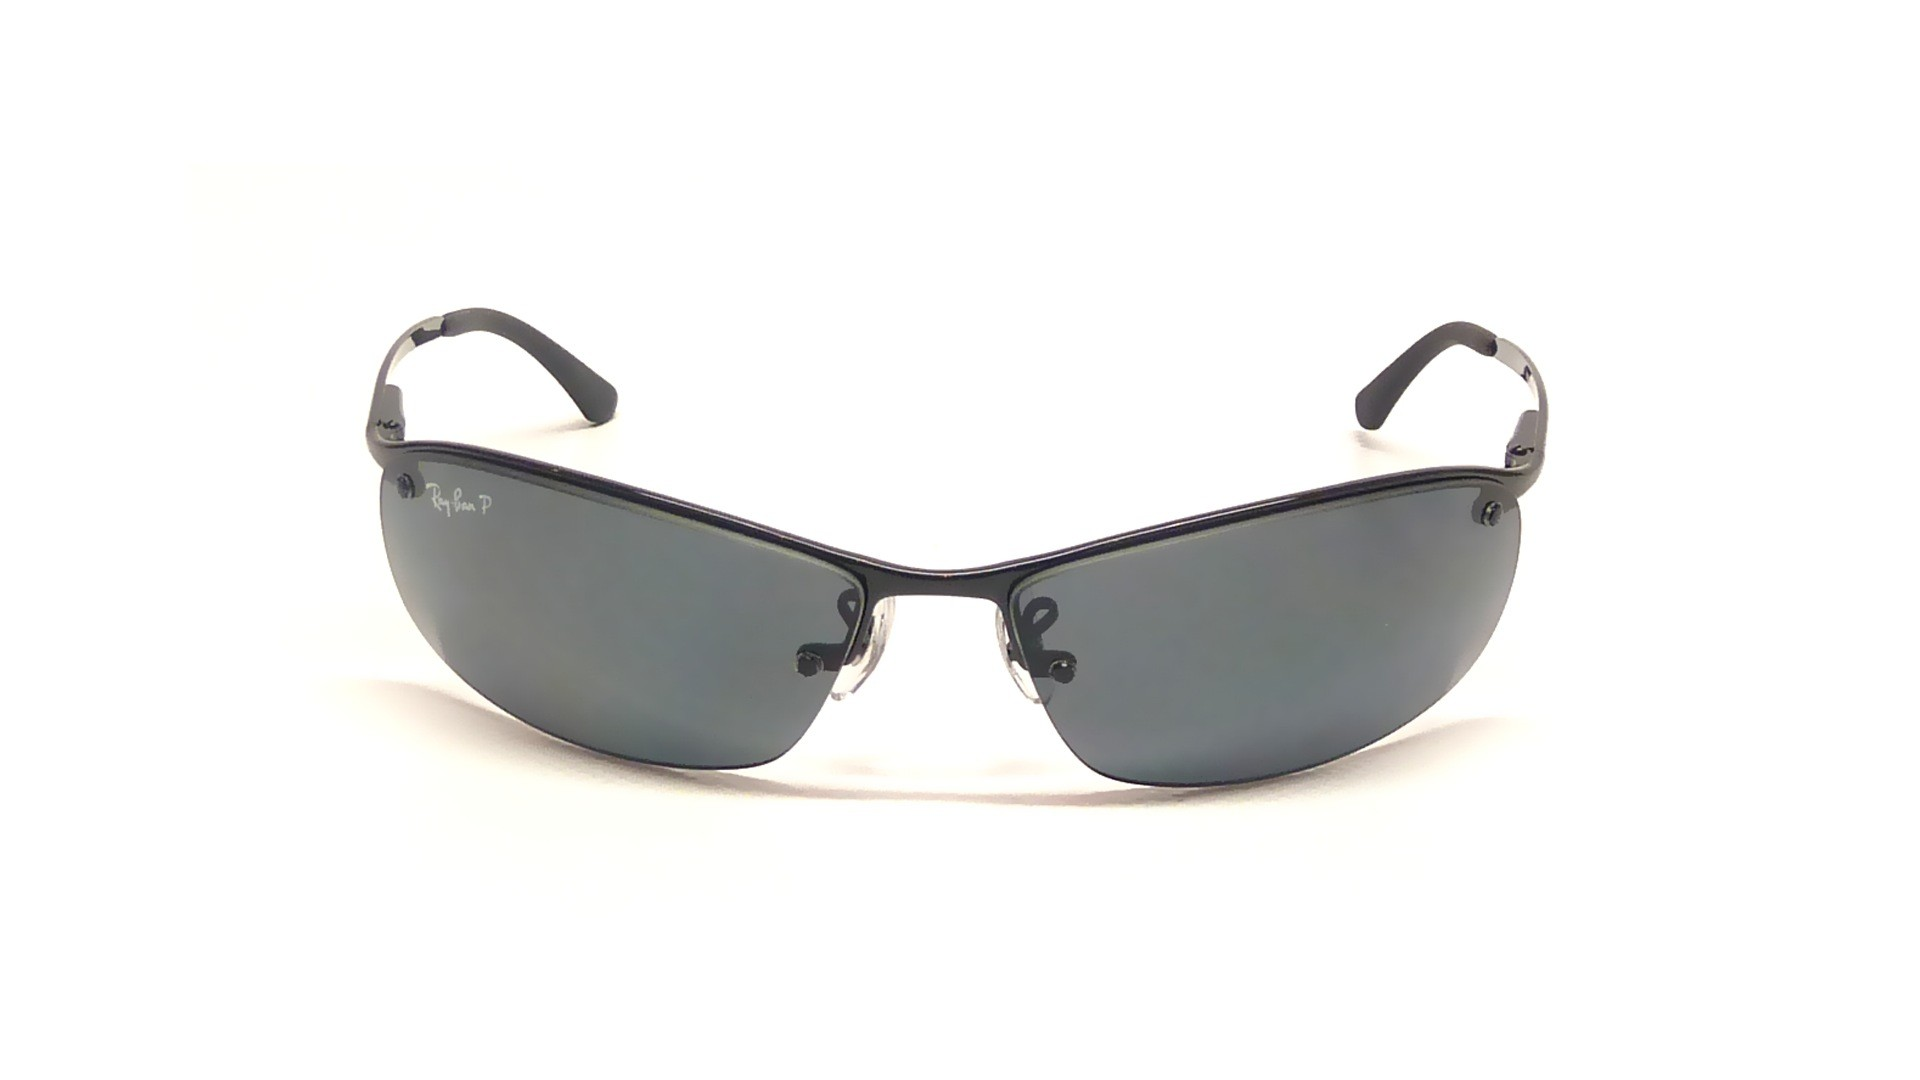 ba7e000ba7dc4f Sunglasses Ray-Ban RB3183 002 81 63-15 Black Large Polarized